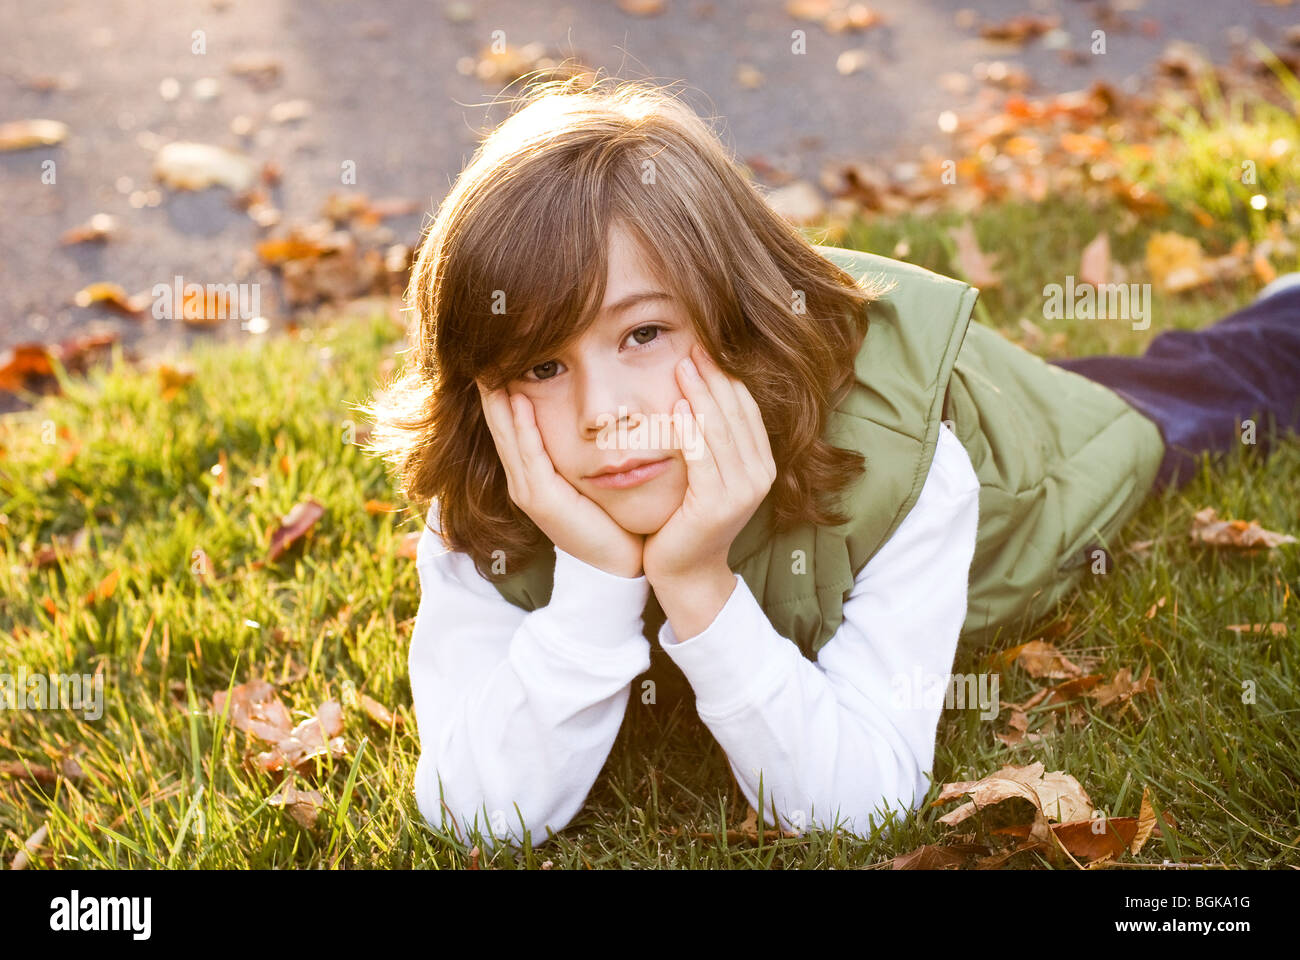 boy lying in grass - Stock Image